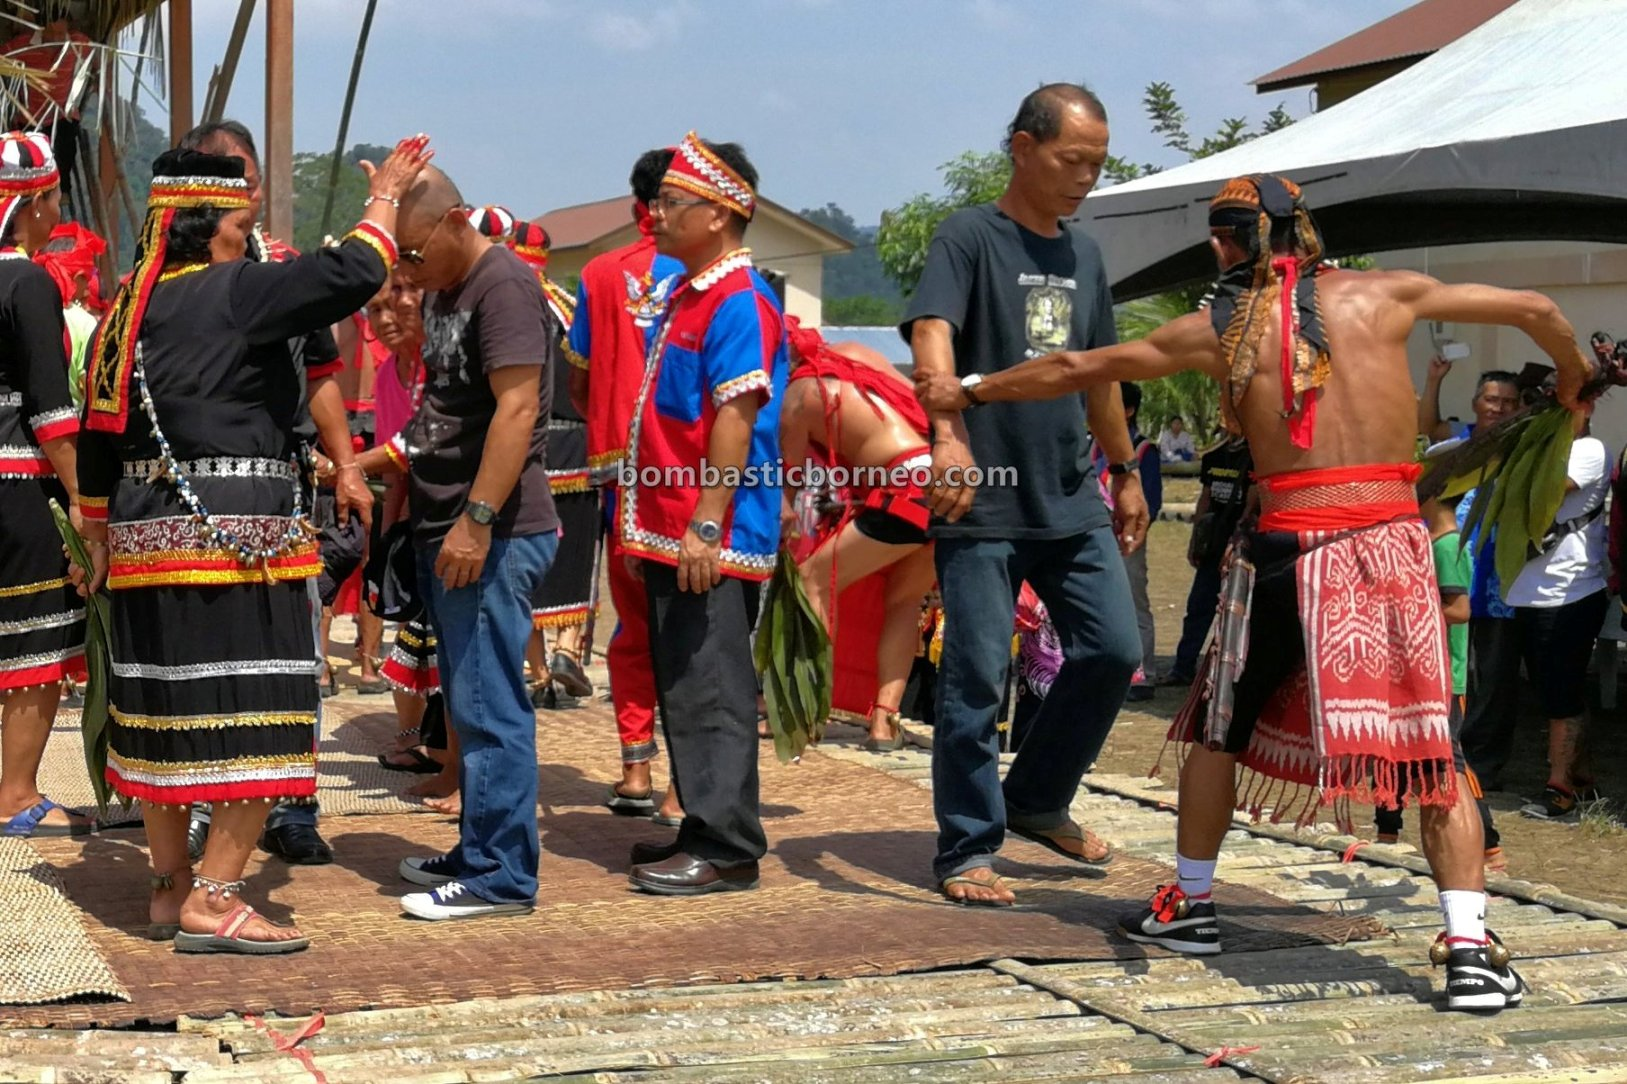 Bengoh Dam Resettlement Scheme, traditional, budaya, ceremony, ritual, dayak bidayuh, tribal, native, Gawai harvest festival, Sarawak, Padawan, Tourism, travel guide, 婆罗洲砂拉越, 马来西亚原住民丰收节